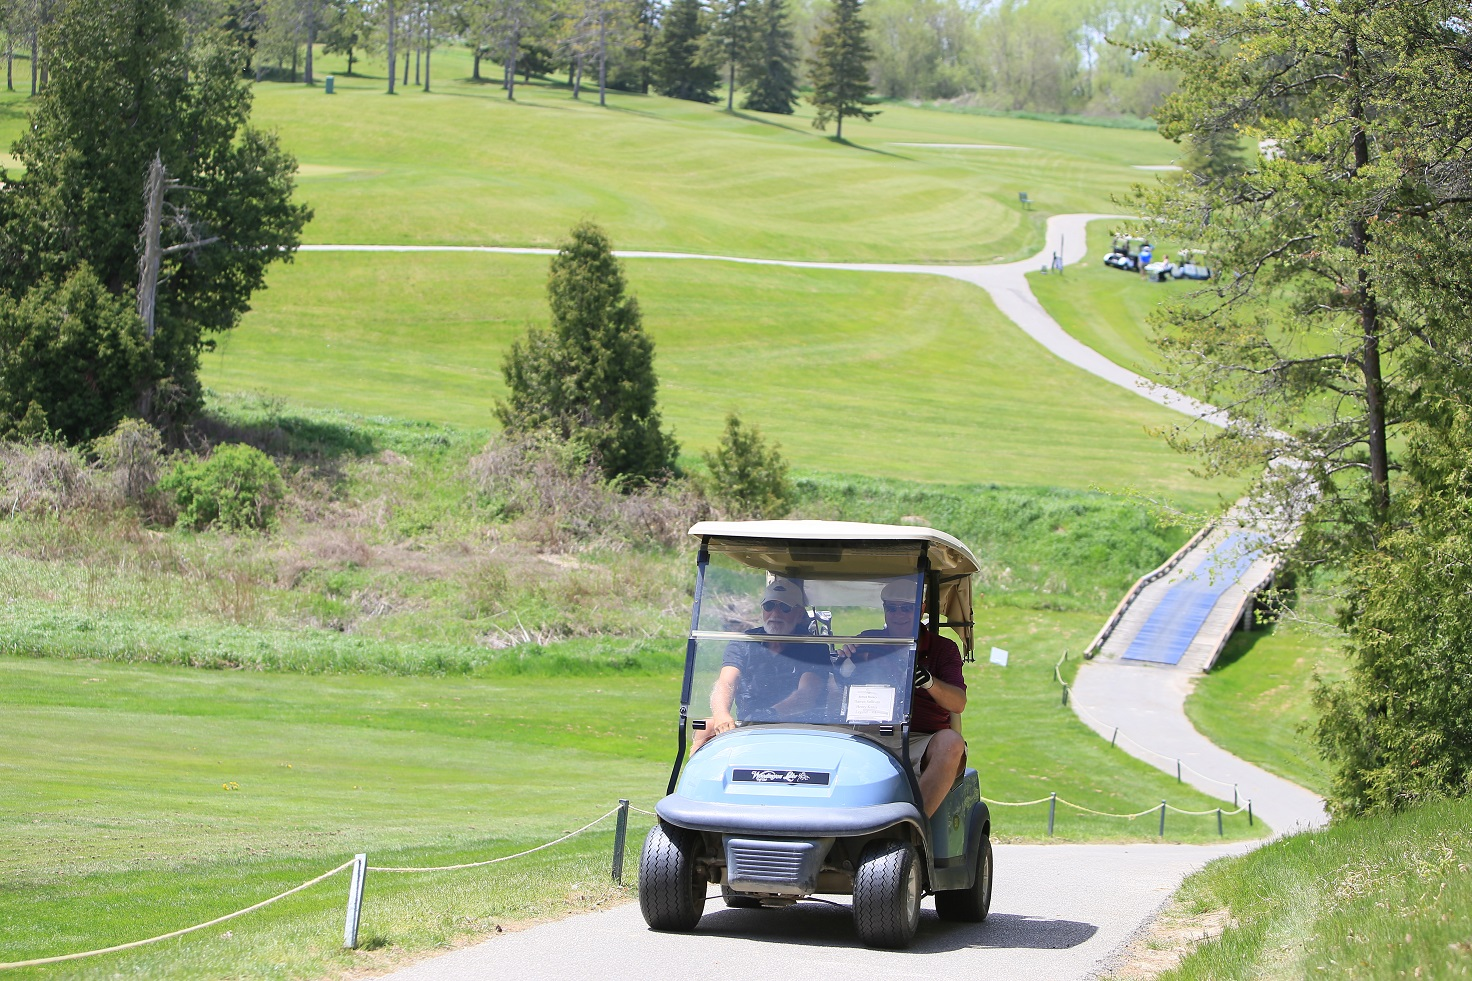 2019 Bolton Rotary Early Bird Golf Classic gallery image #7